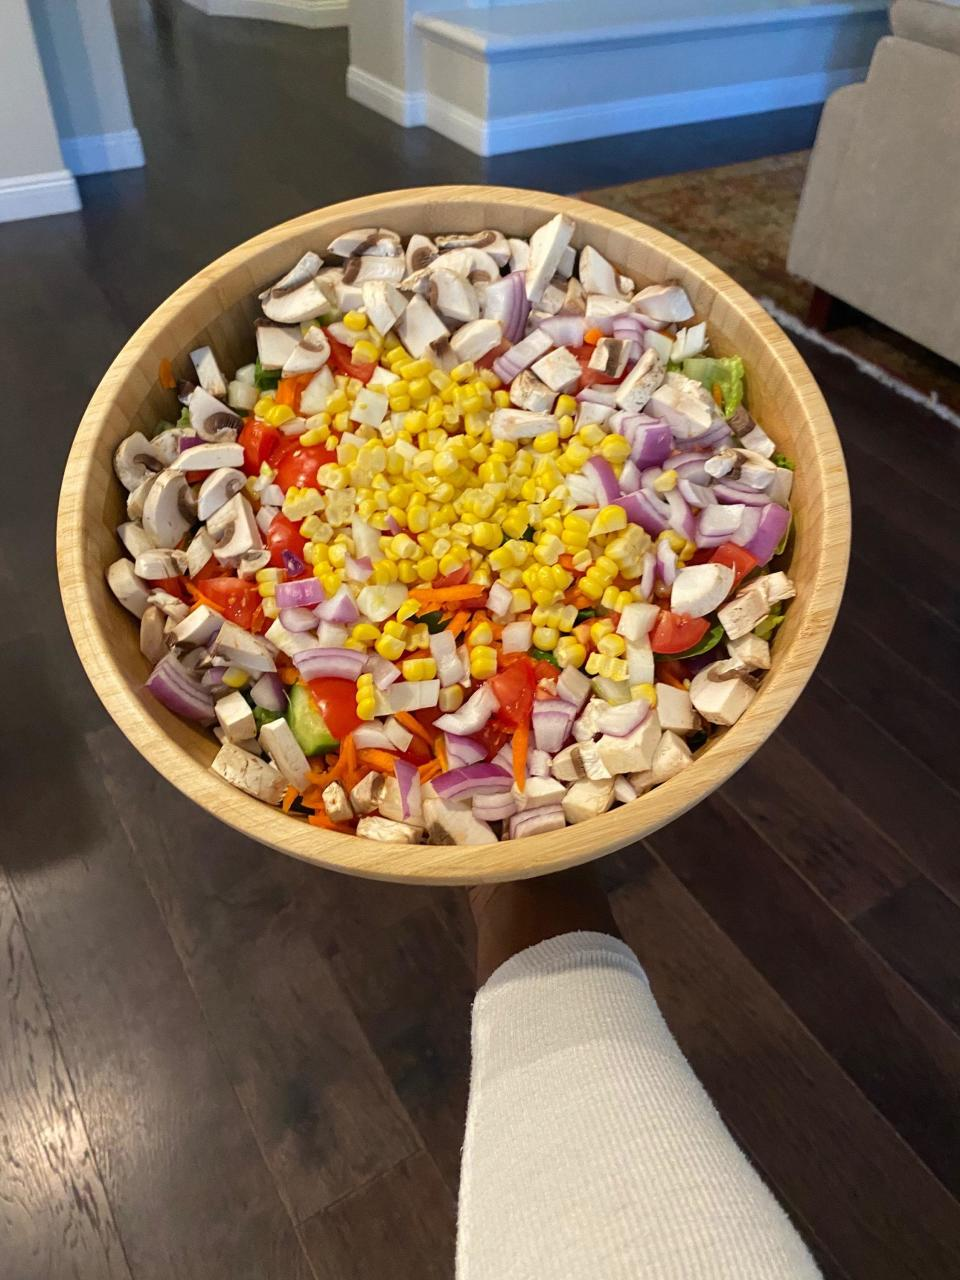 """<div class=""""caption""""> Hubby made sure I got some veggies to balance the sweets - fully loaded romaine and veggie salad. </div> <cite class=""""credit"""">Photo courtesy of Keri Shahidi</cite>"""